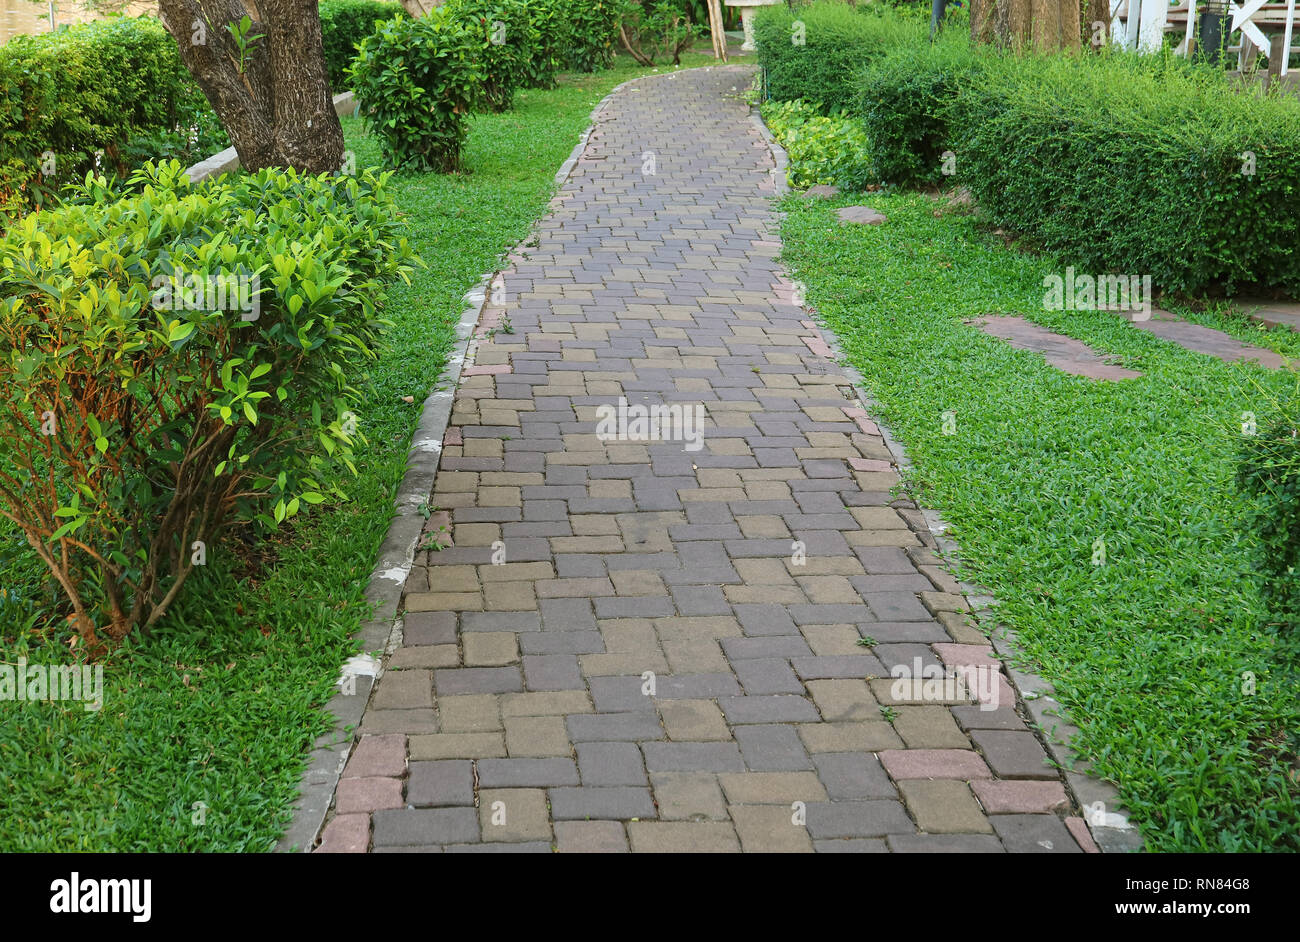 Stone Block Paved Walkway in the Greenery Garden - Stock Image